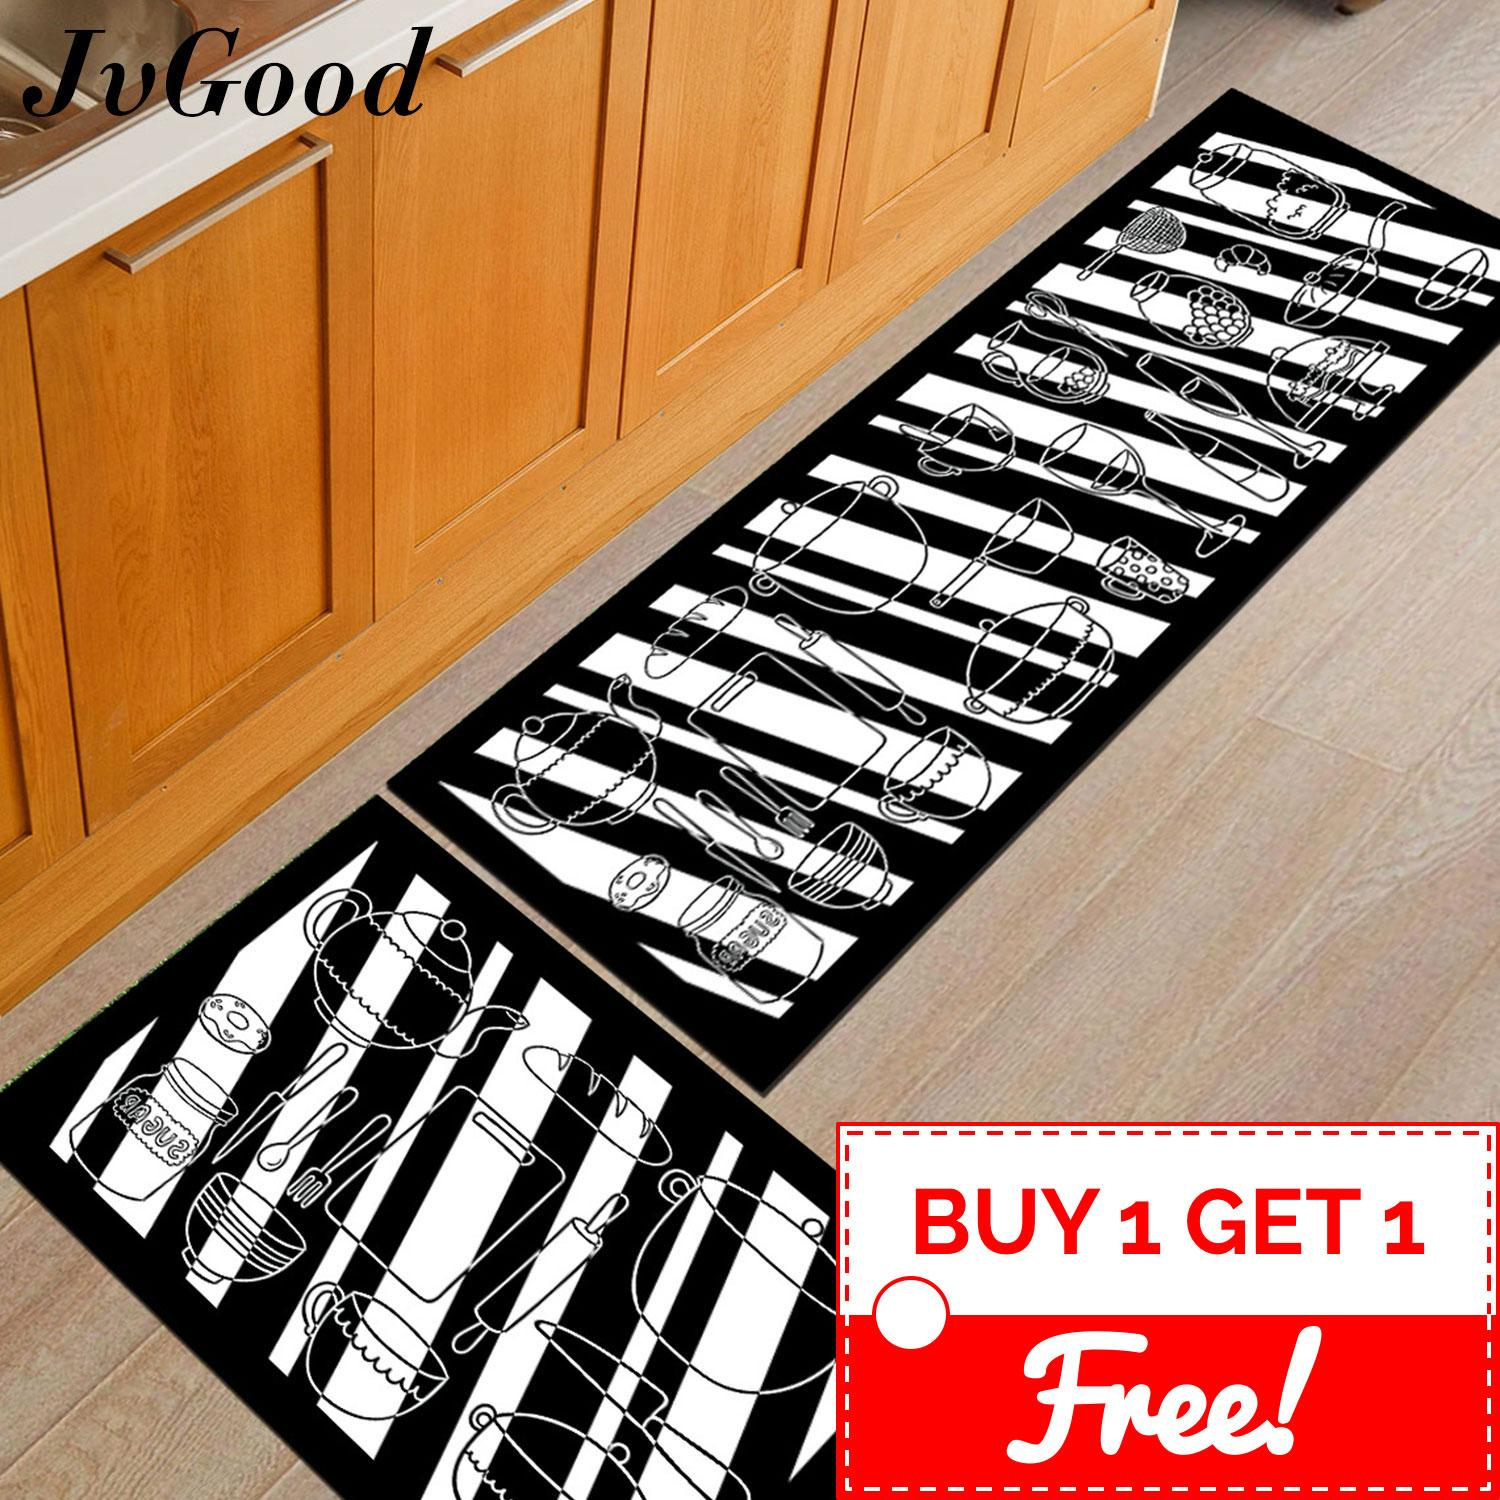 Carpet Floor Mats >> Rug Carpet For Sale Home Carpets Prices Brands Review In